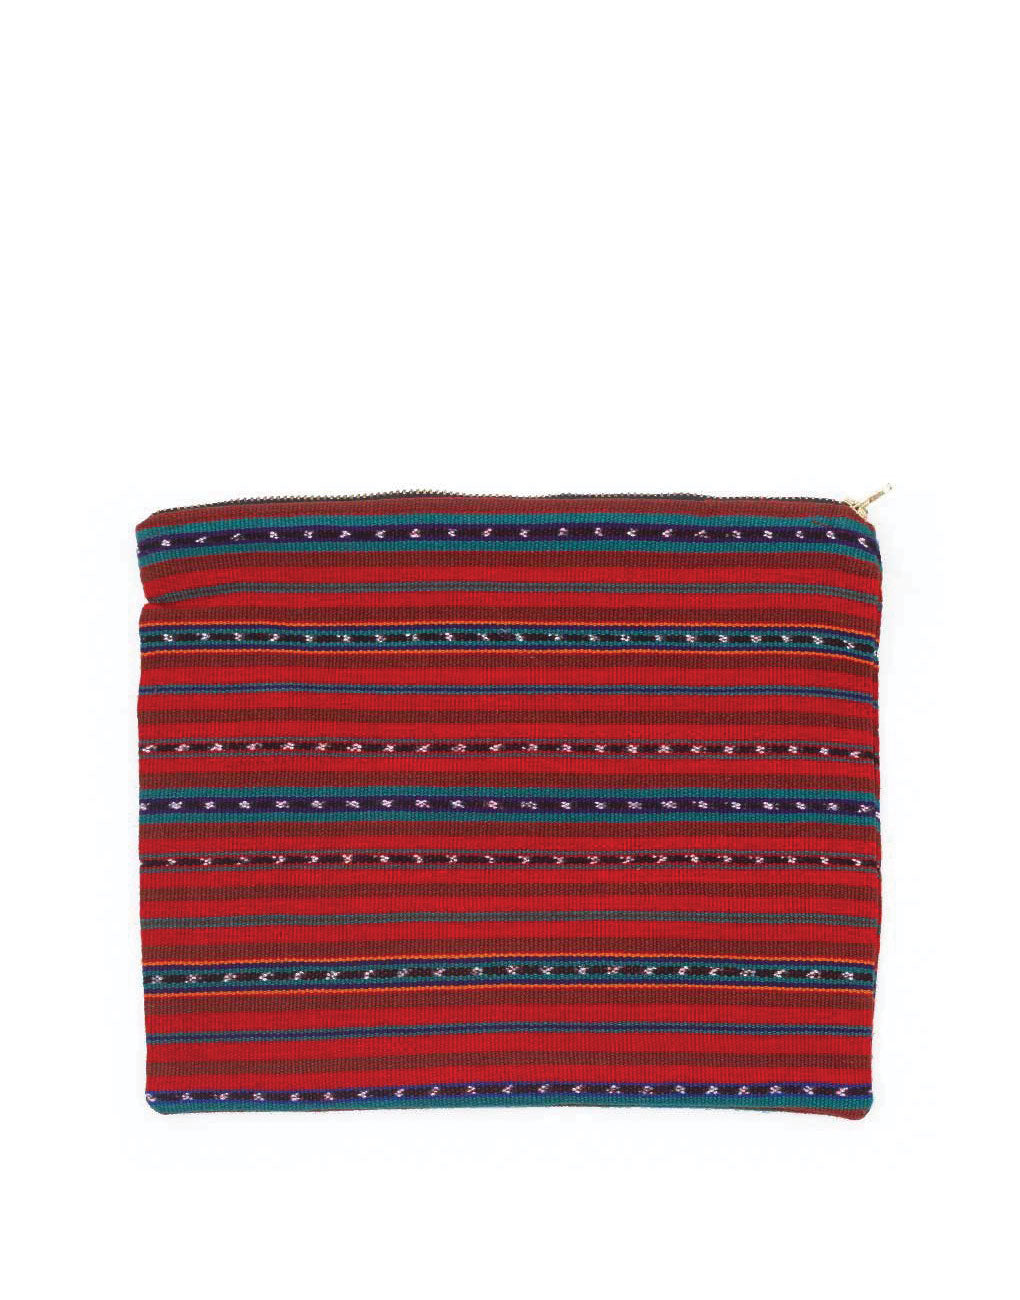 Fair Trade Handwoven Red & Blue Travel Bag